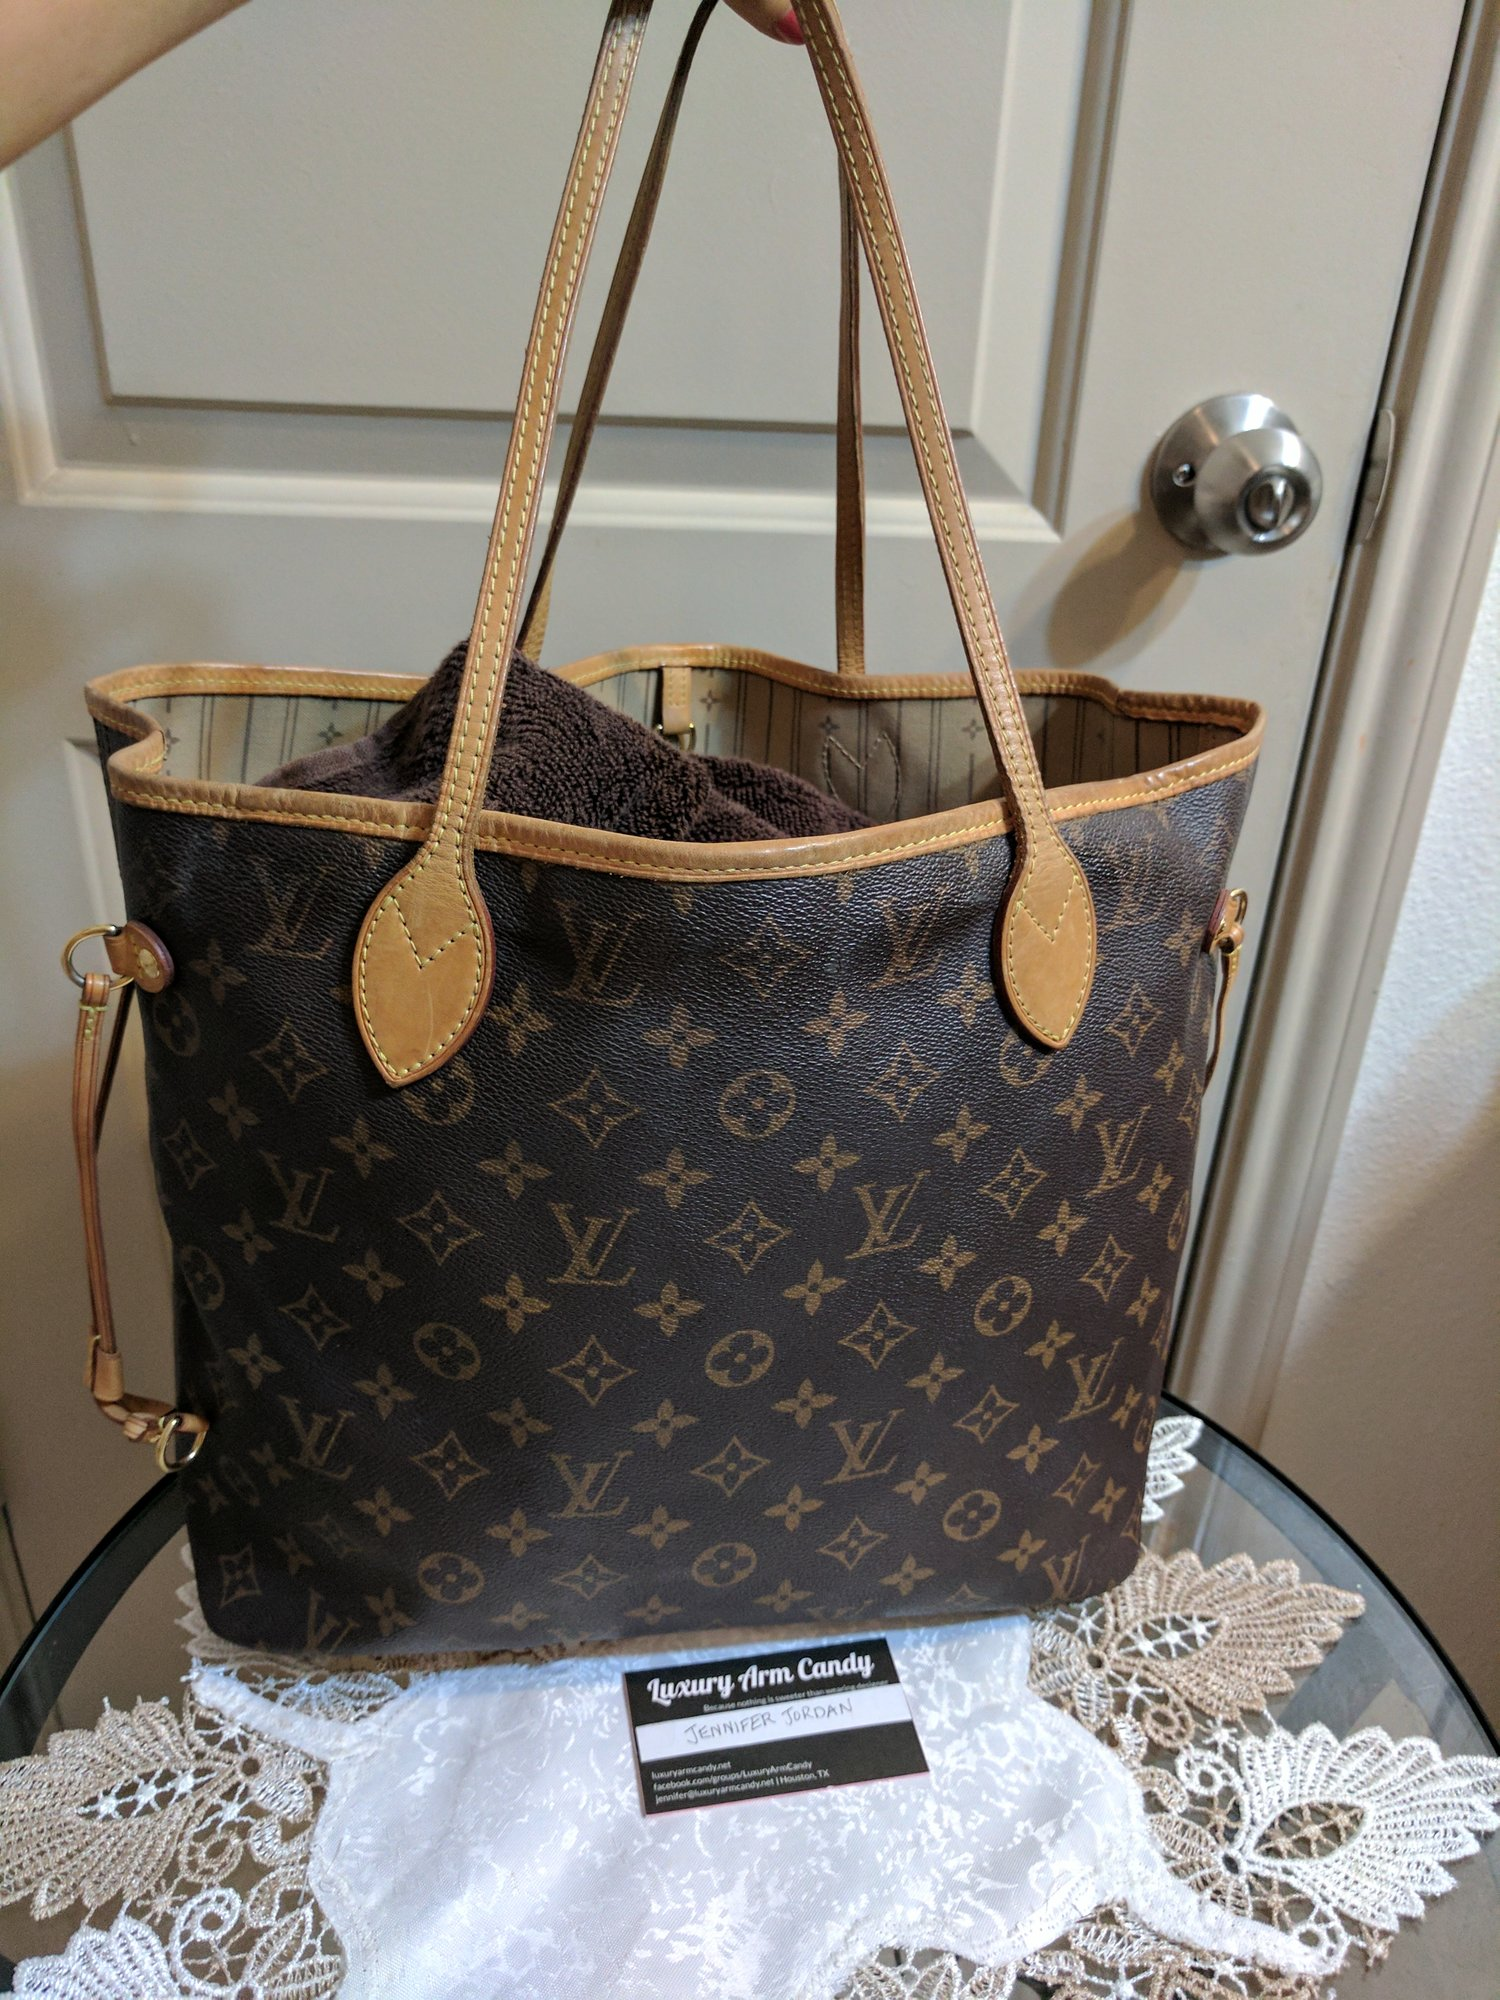 neverfull mm luxury arm candy